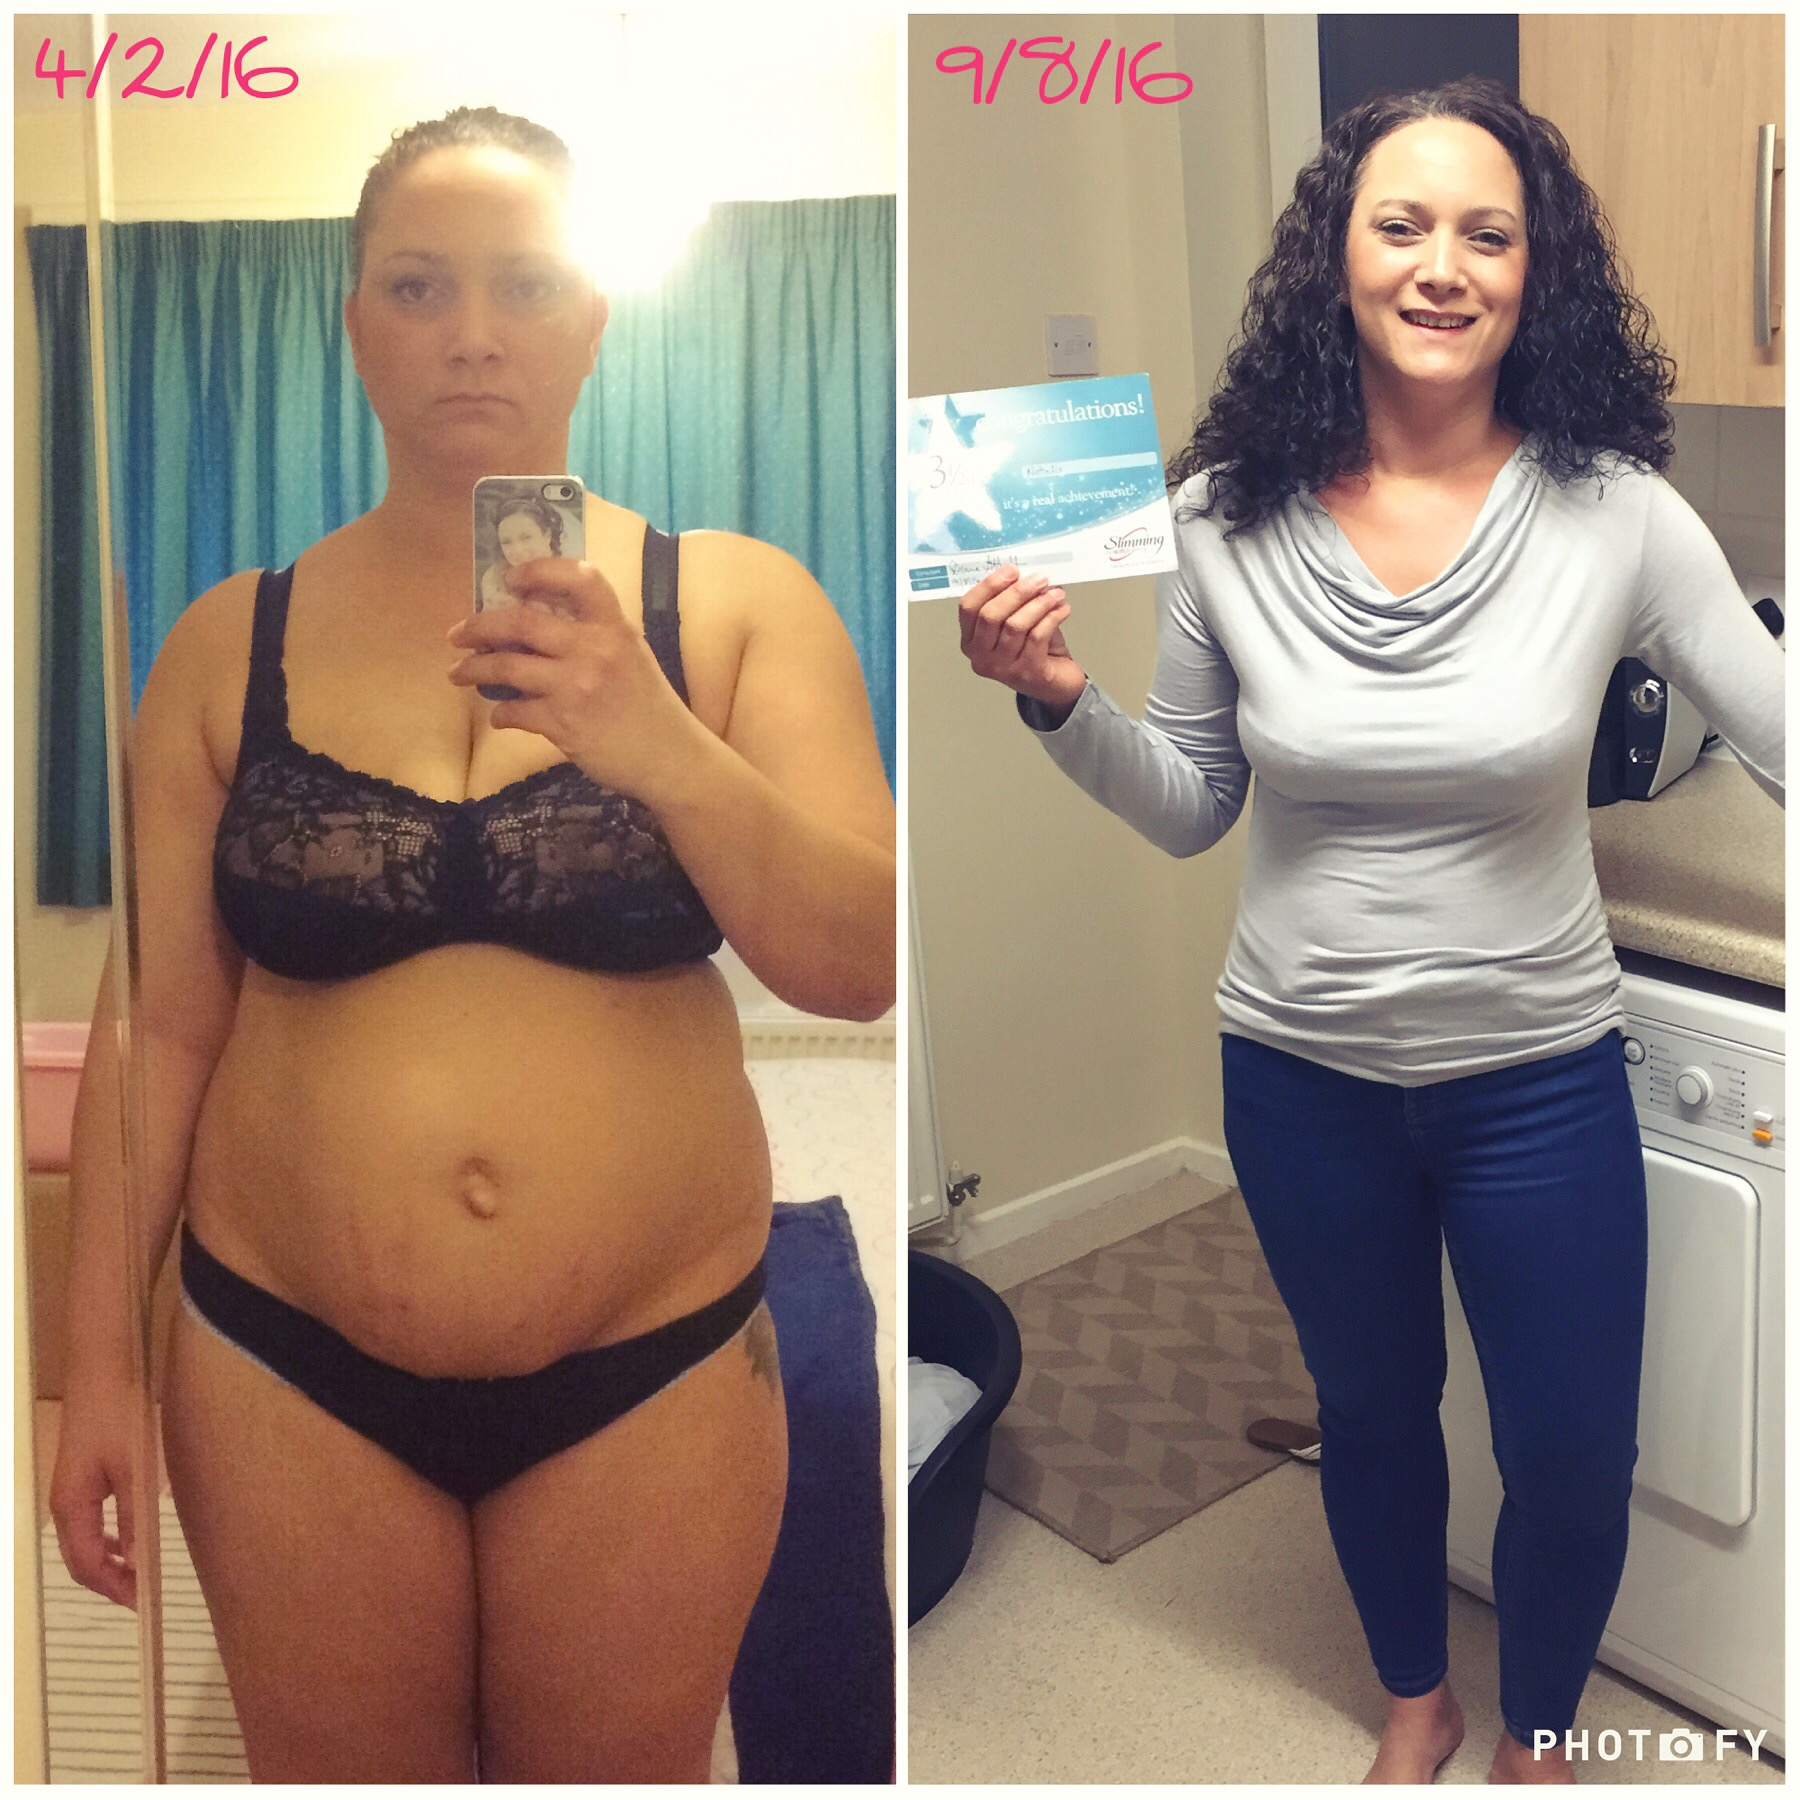 Natalie lost 49.5 pounds! See my before and after weight loss pictures, and read amazing weight loss success stories from real women and their best weight loss diet plans and programs. Motivation to lose weight with walking and inspiration from before and after weightloss pics and photos.